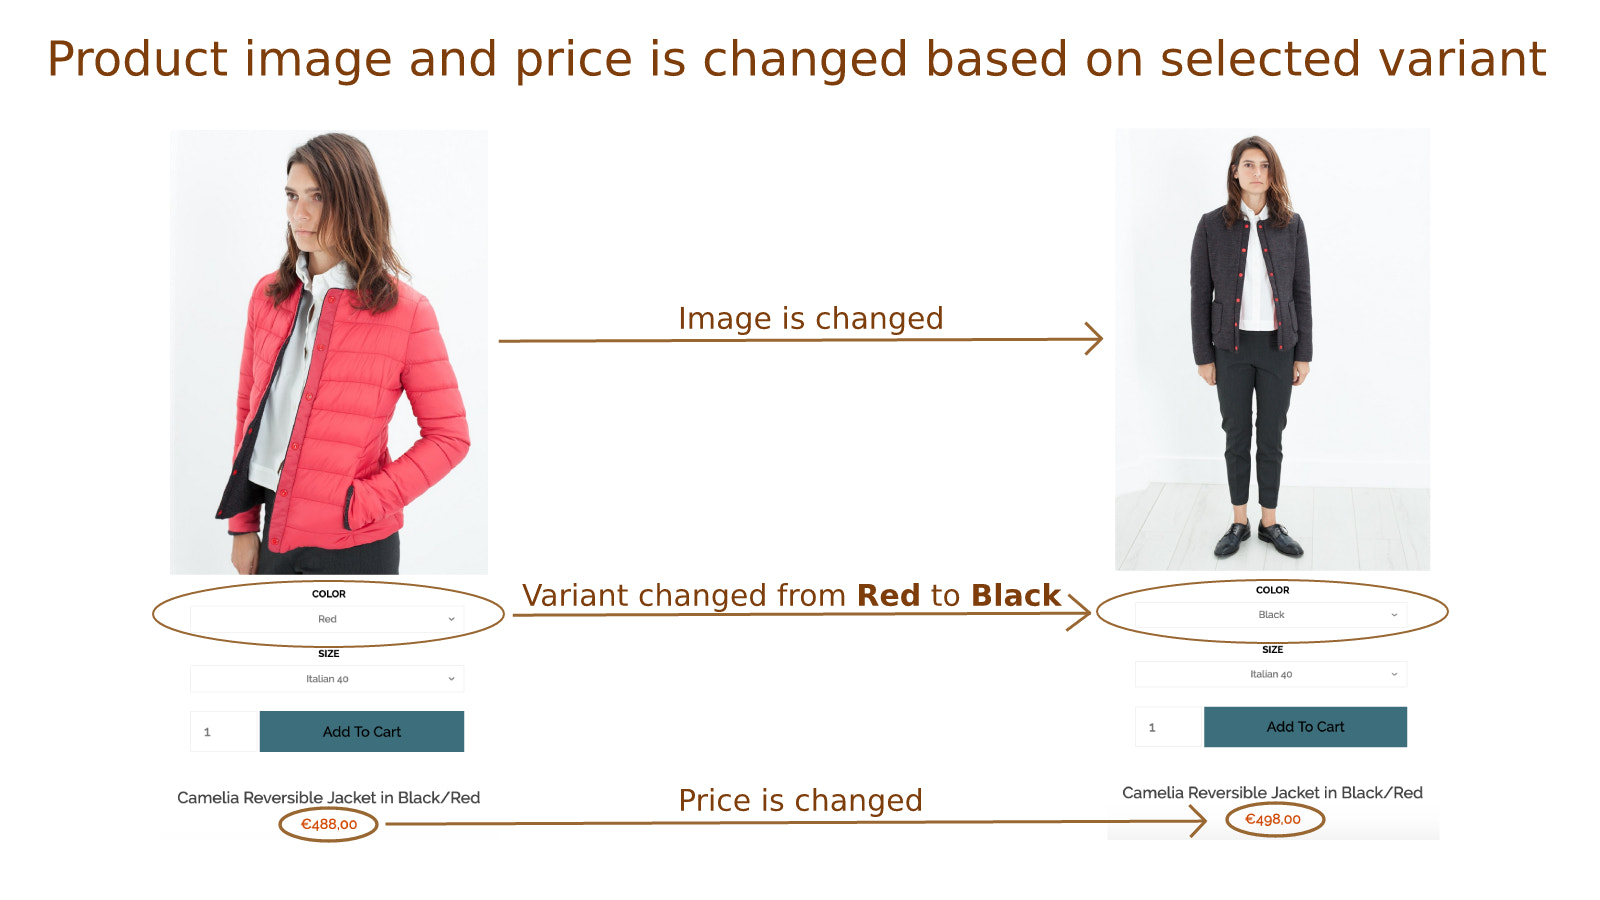 Product image and price is changed based on selected variant